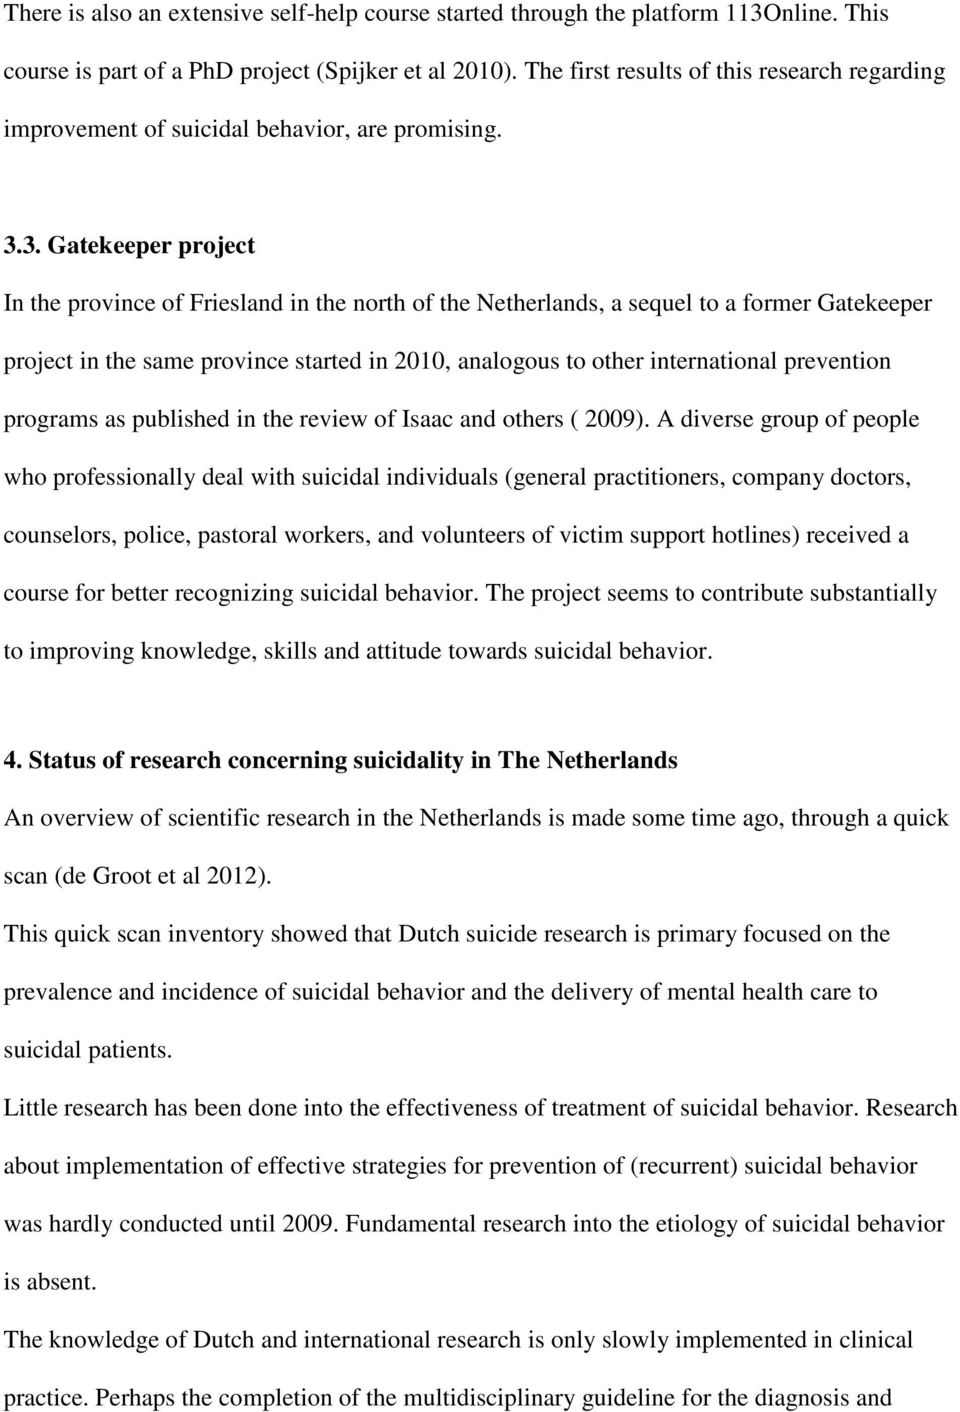 3. Gatekeeper project In the province of Friesland in the north of the Netherlands, a sequel to a former Gatekeeper project in the same province started in 2010, analogous to other international